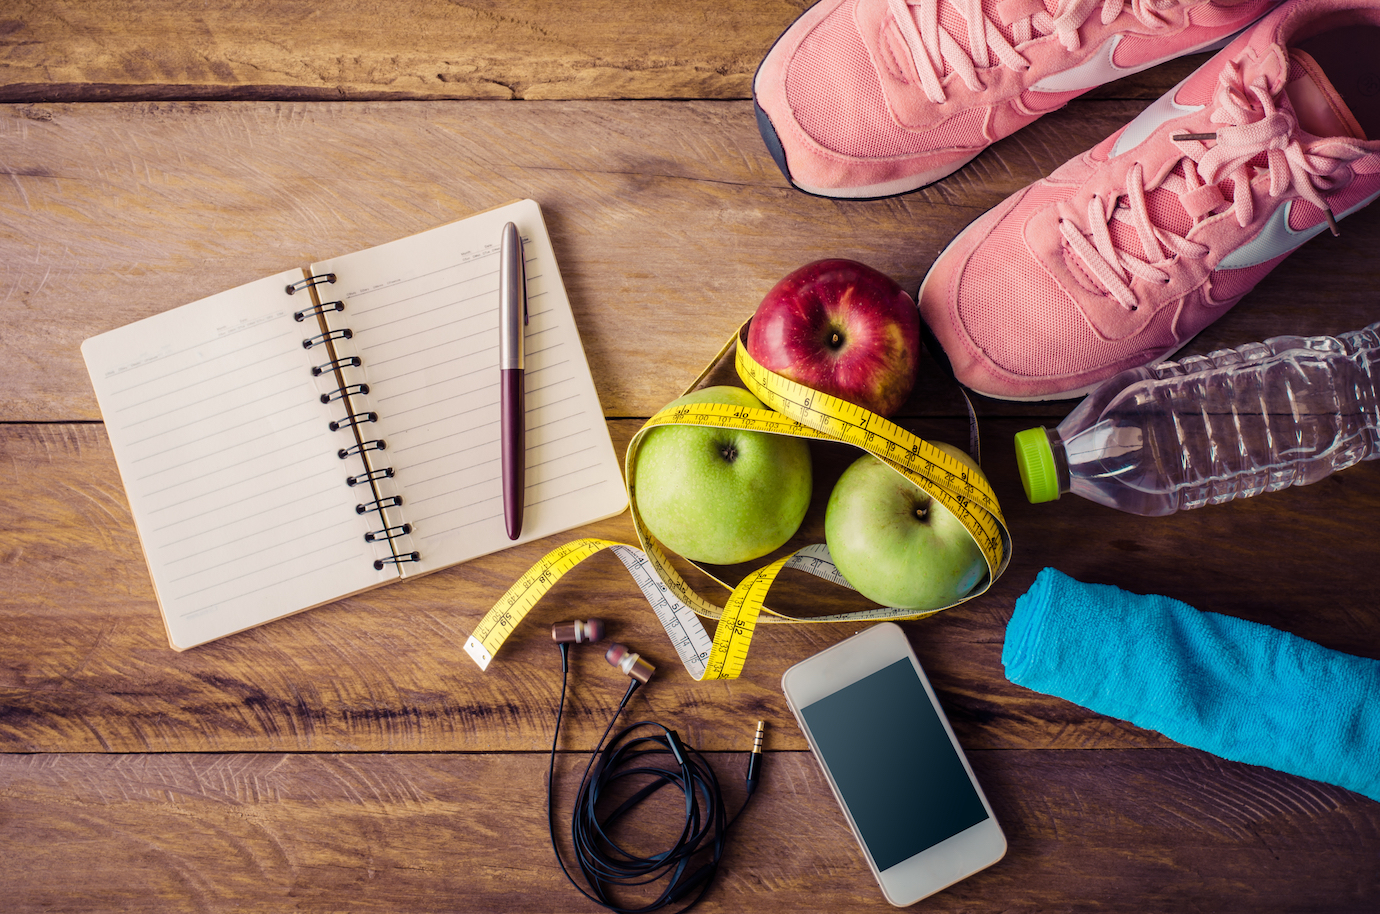 Following these lifestyle tips could prolong life expectancy at the age of 50 by 14 years for women and roughly 12 years for men, according to recent research published by the American Heart Association.